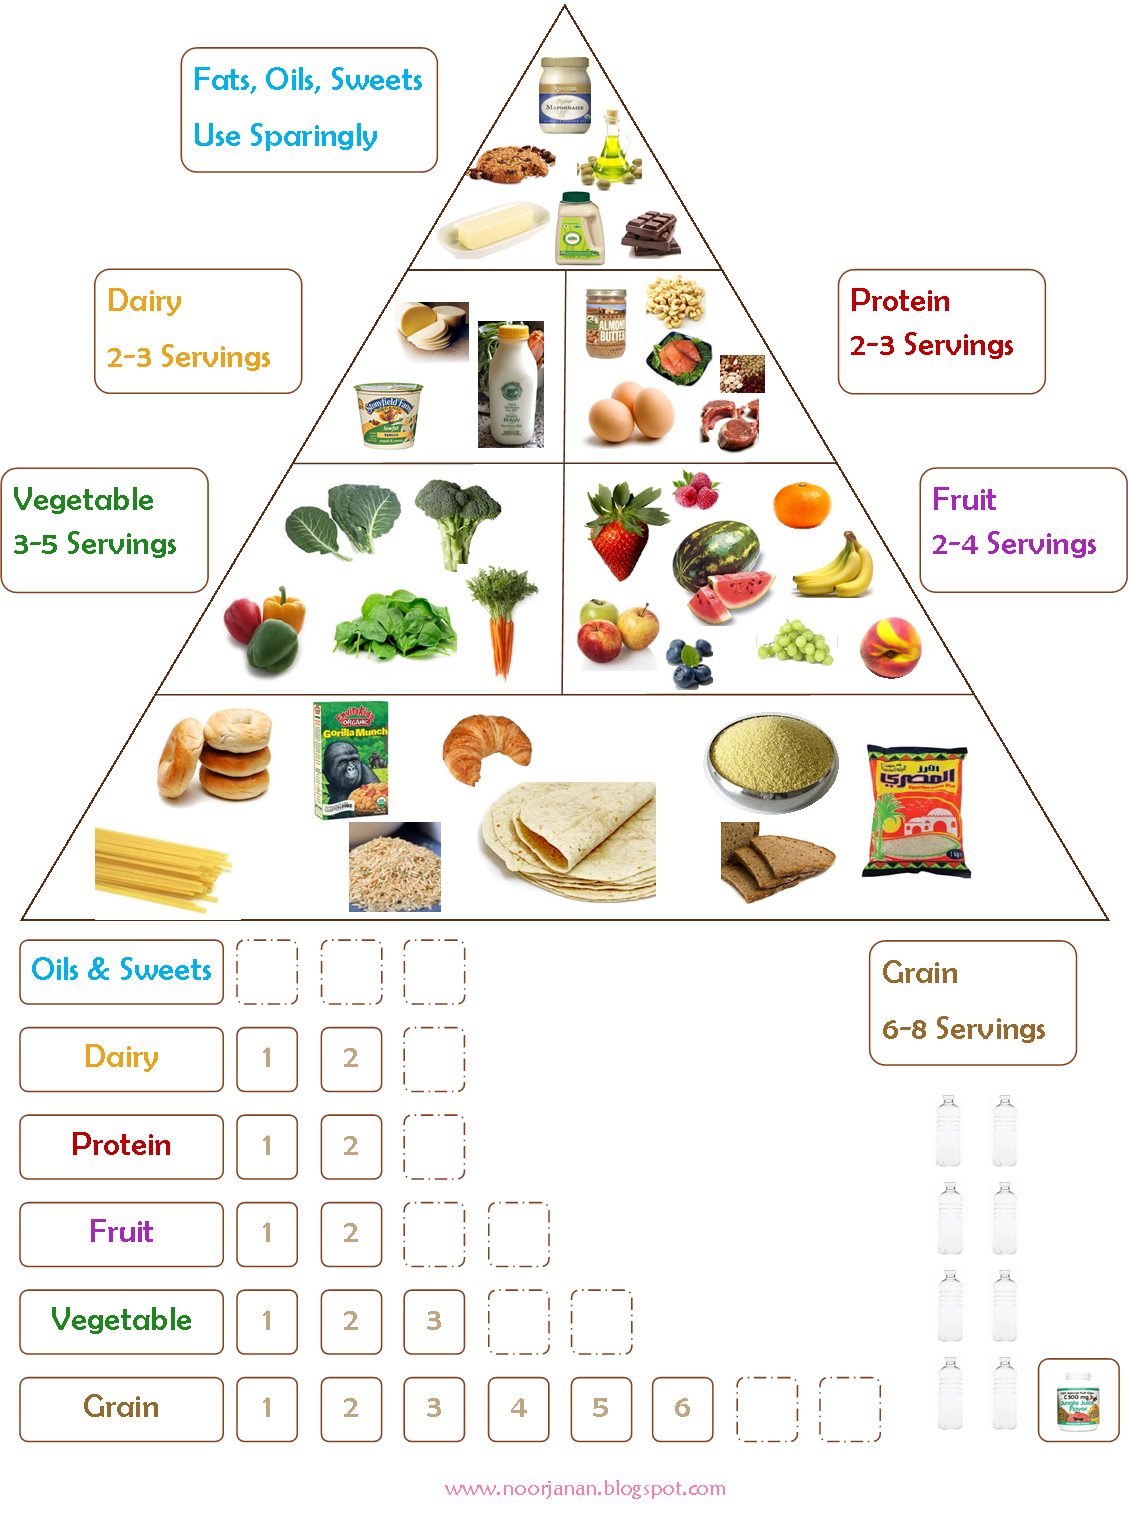 Noor Janan Homeschool Food Chart Food Pyramid Kids Healthy Food Chart Food Charts